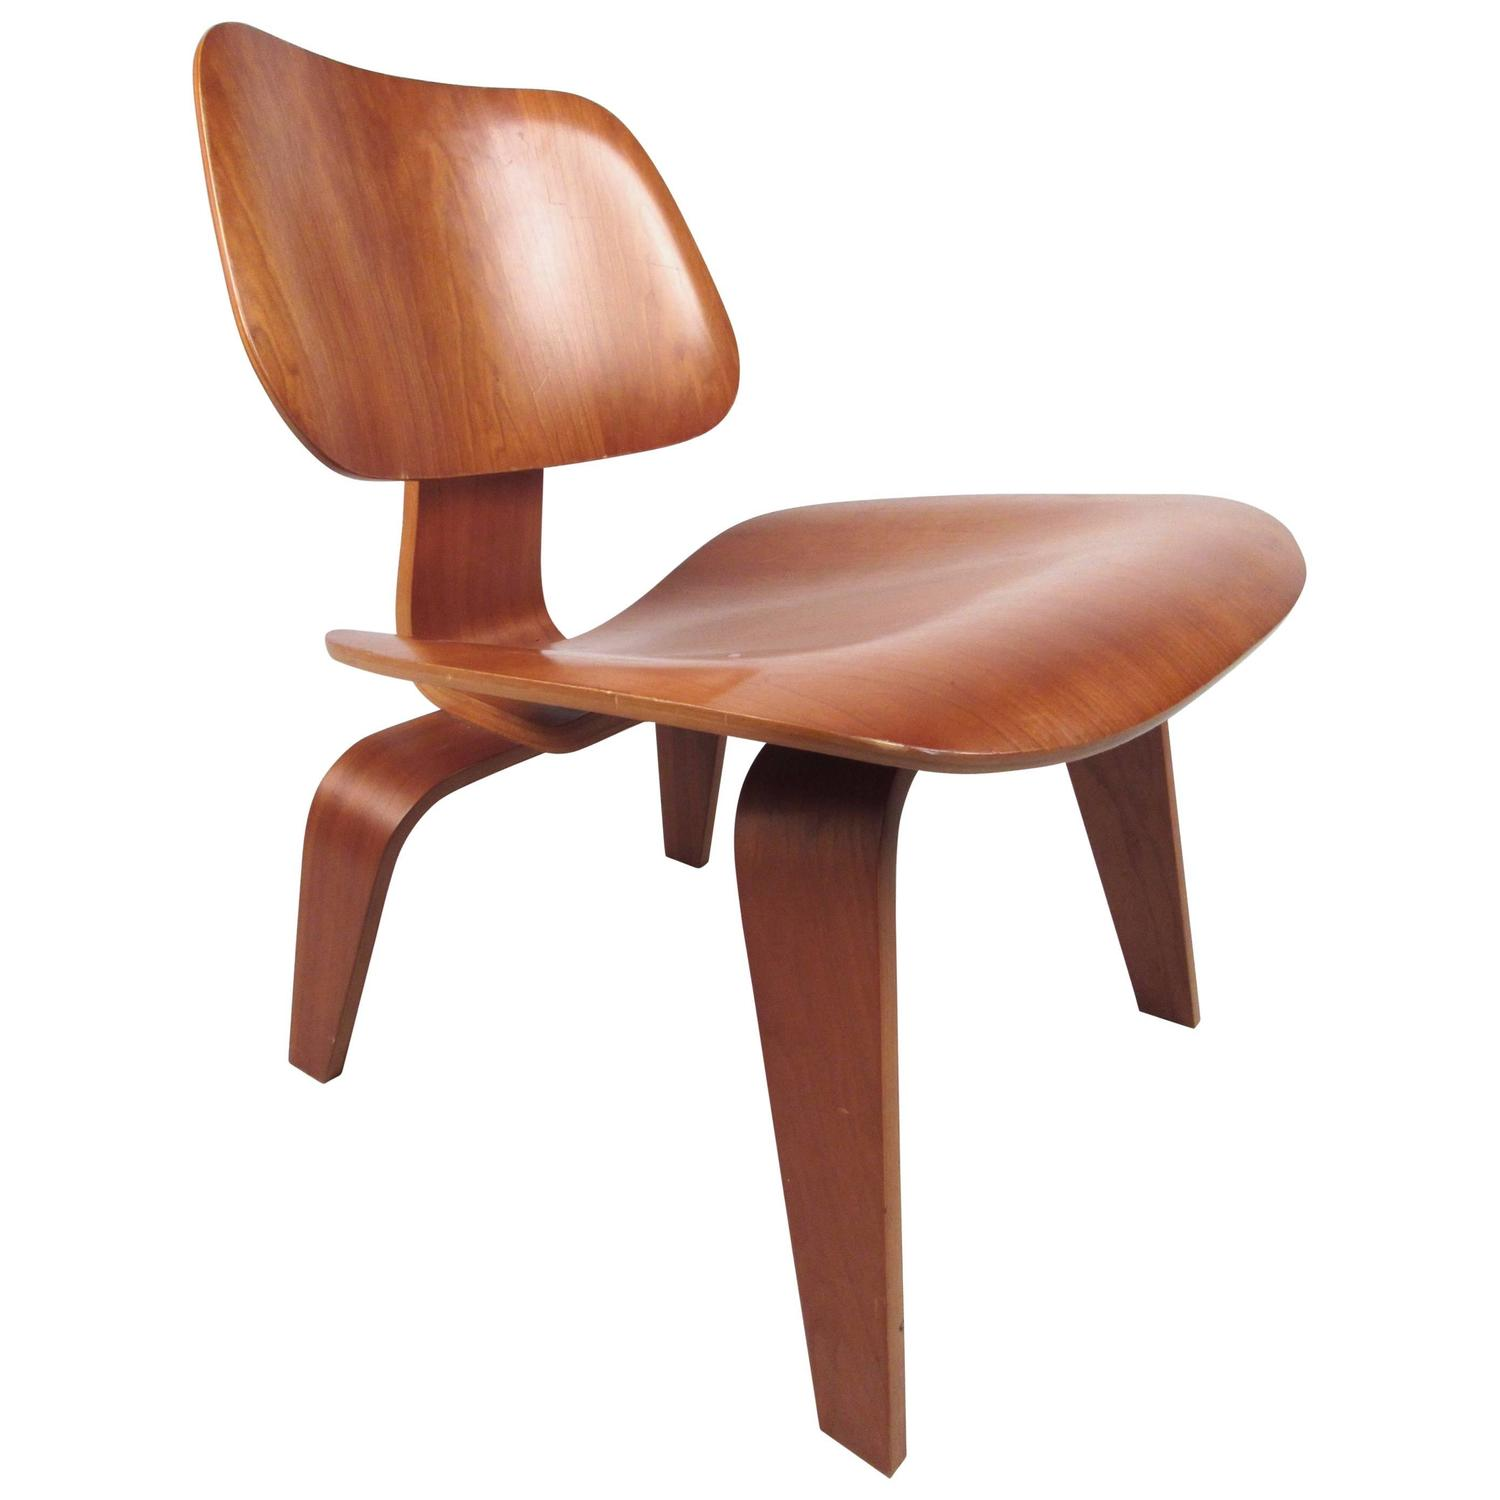 Charles Eames Plywood DCW Side Chair for Herman Miller For Sale at 1stdibs  sc 1 st  1stDibs & Charles Eames Plywood DCW Side Chair for Herman Miller For Sale at ...